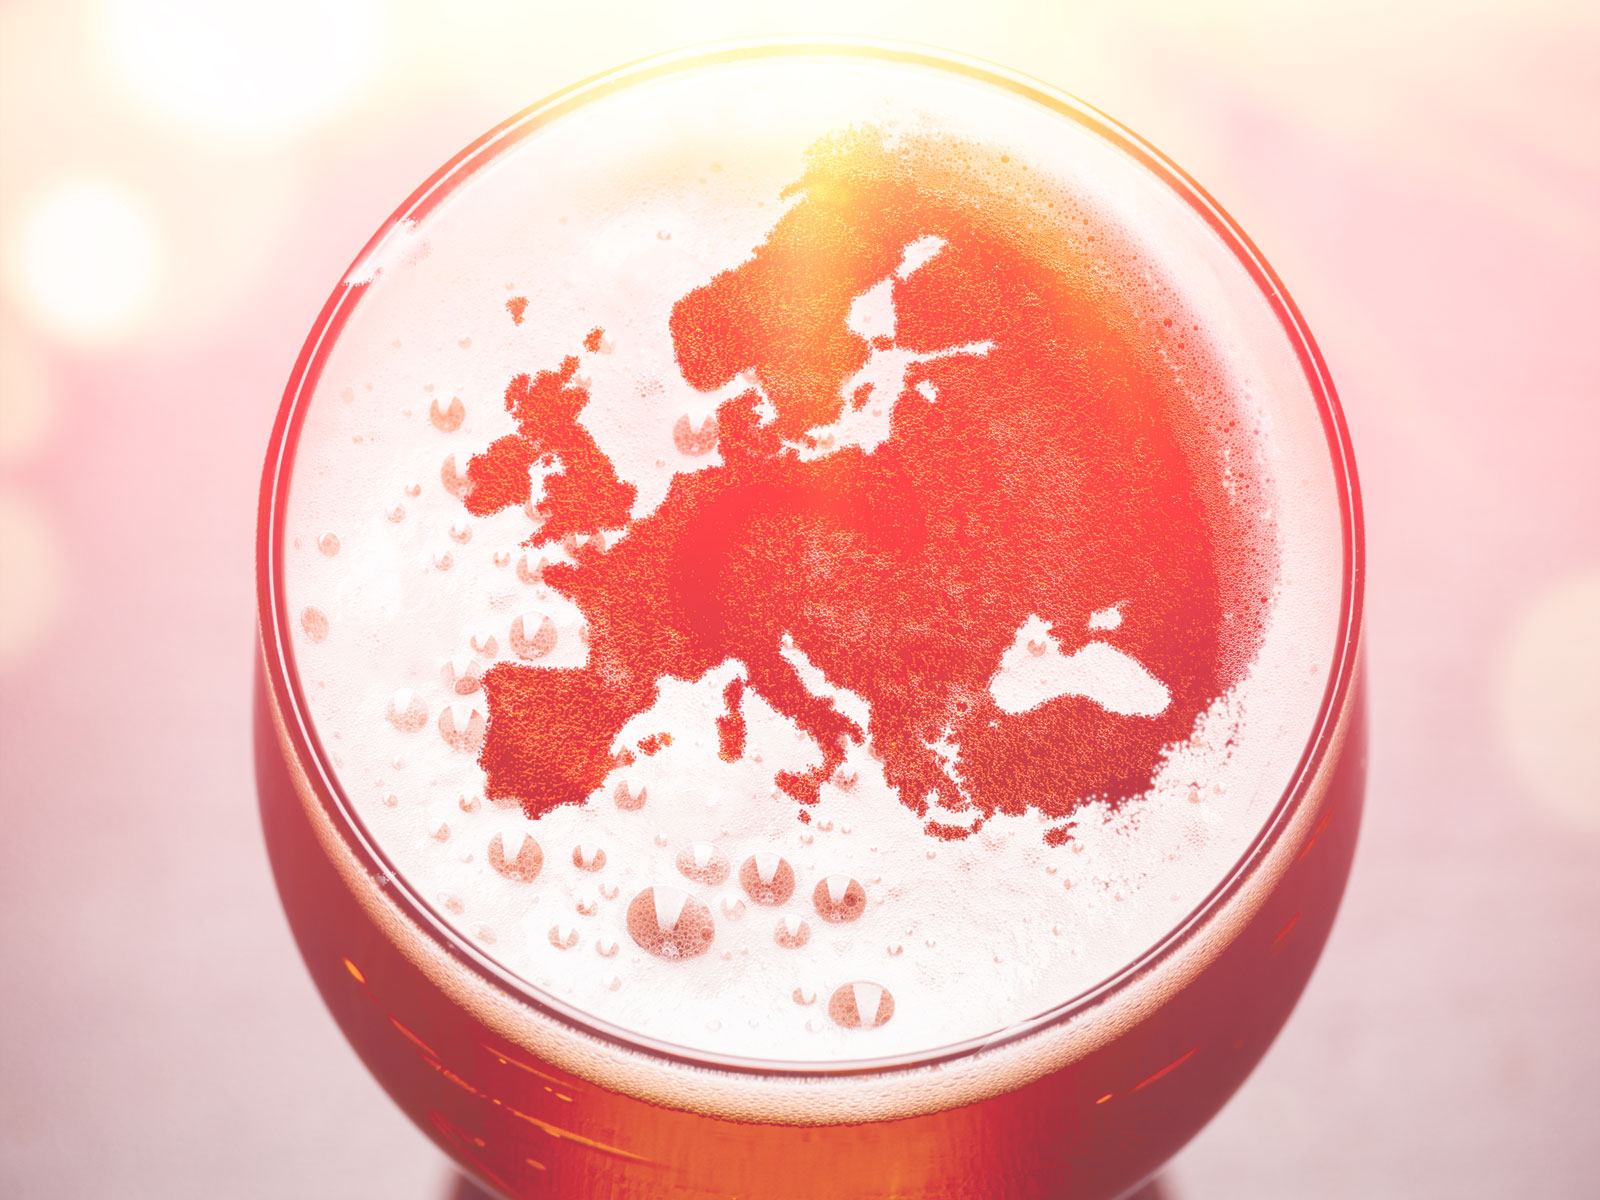 These Countries Produce the Most Beer in Europe